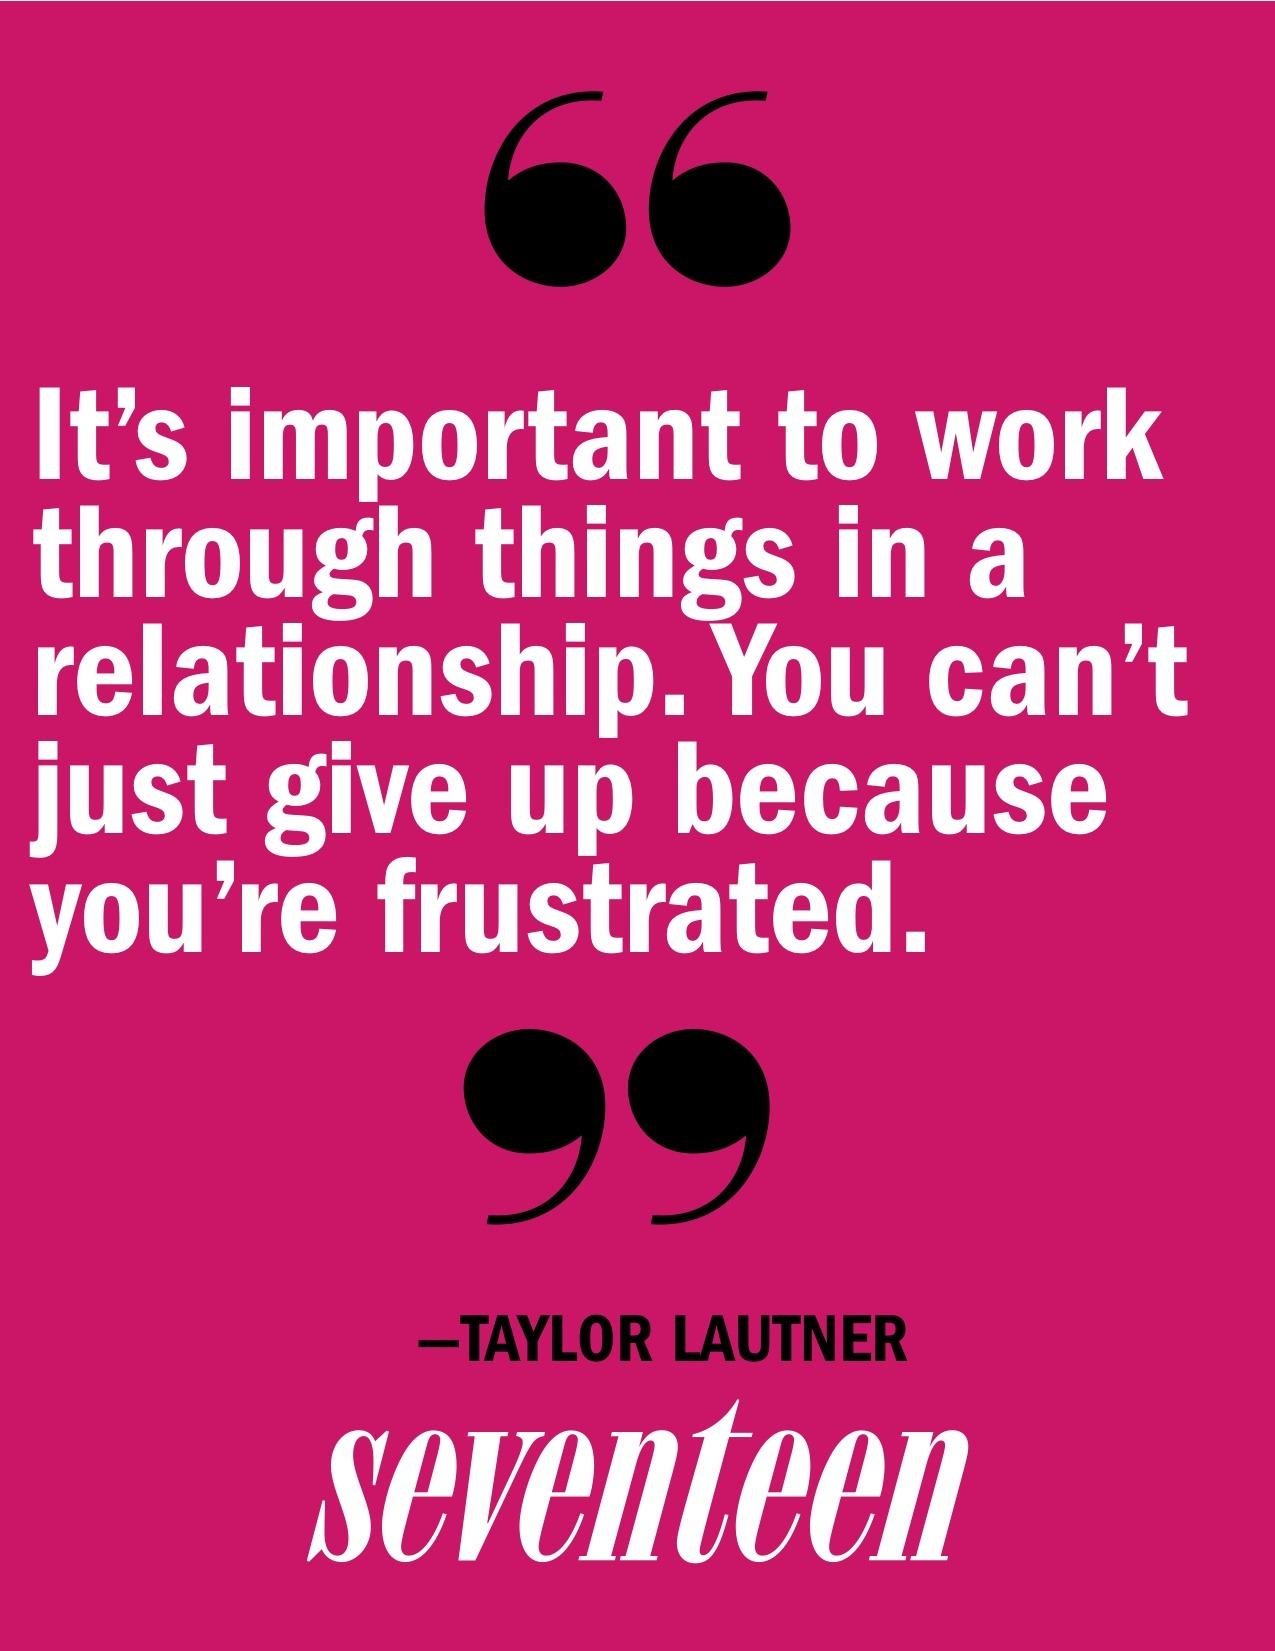 Read more from Taylor Lautner, here.